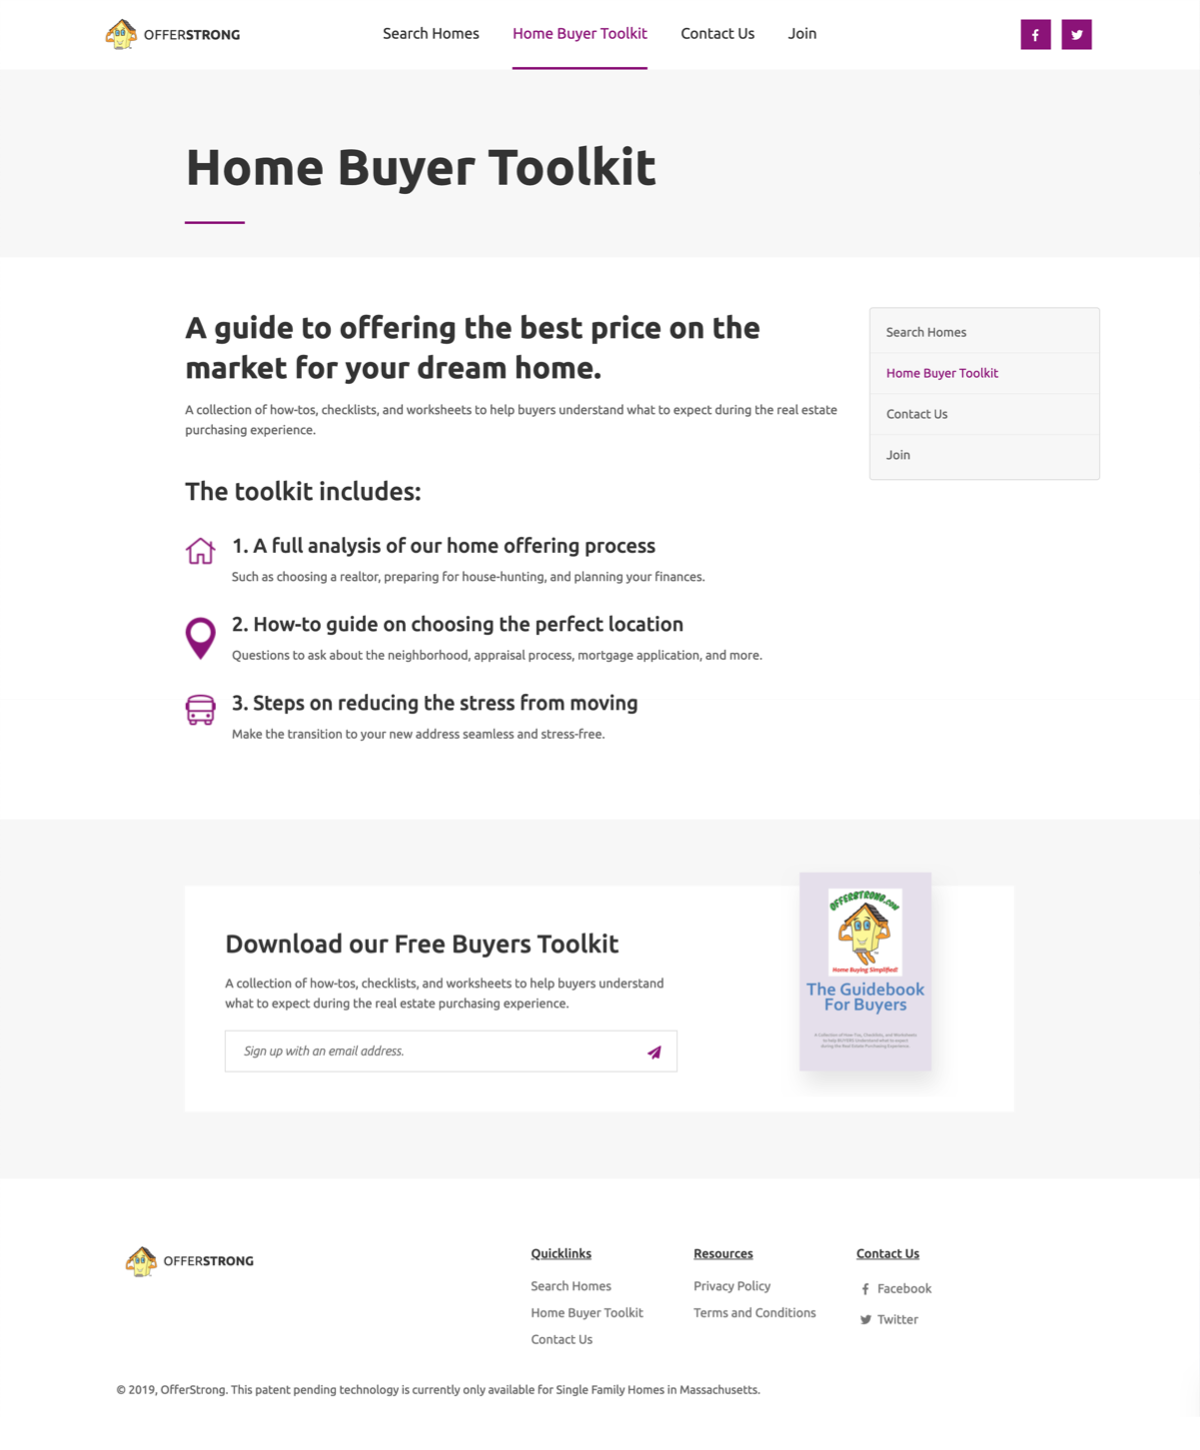 OfferStrong's home buyer toolkit